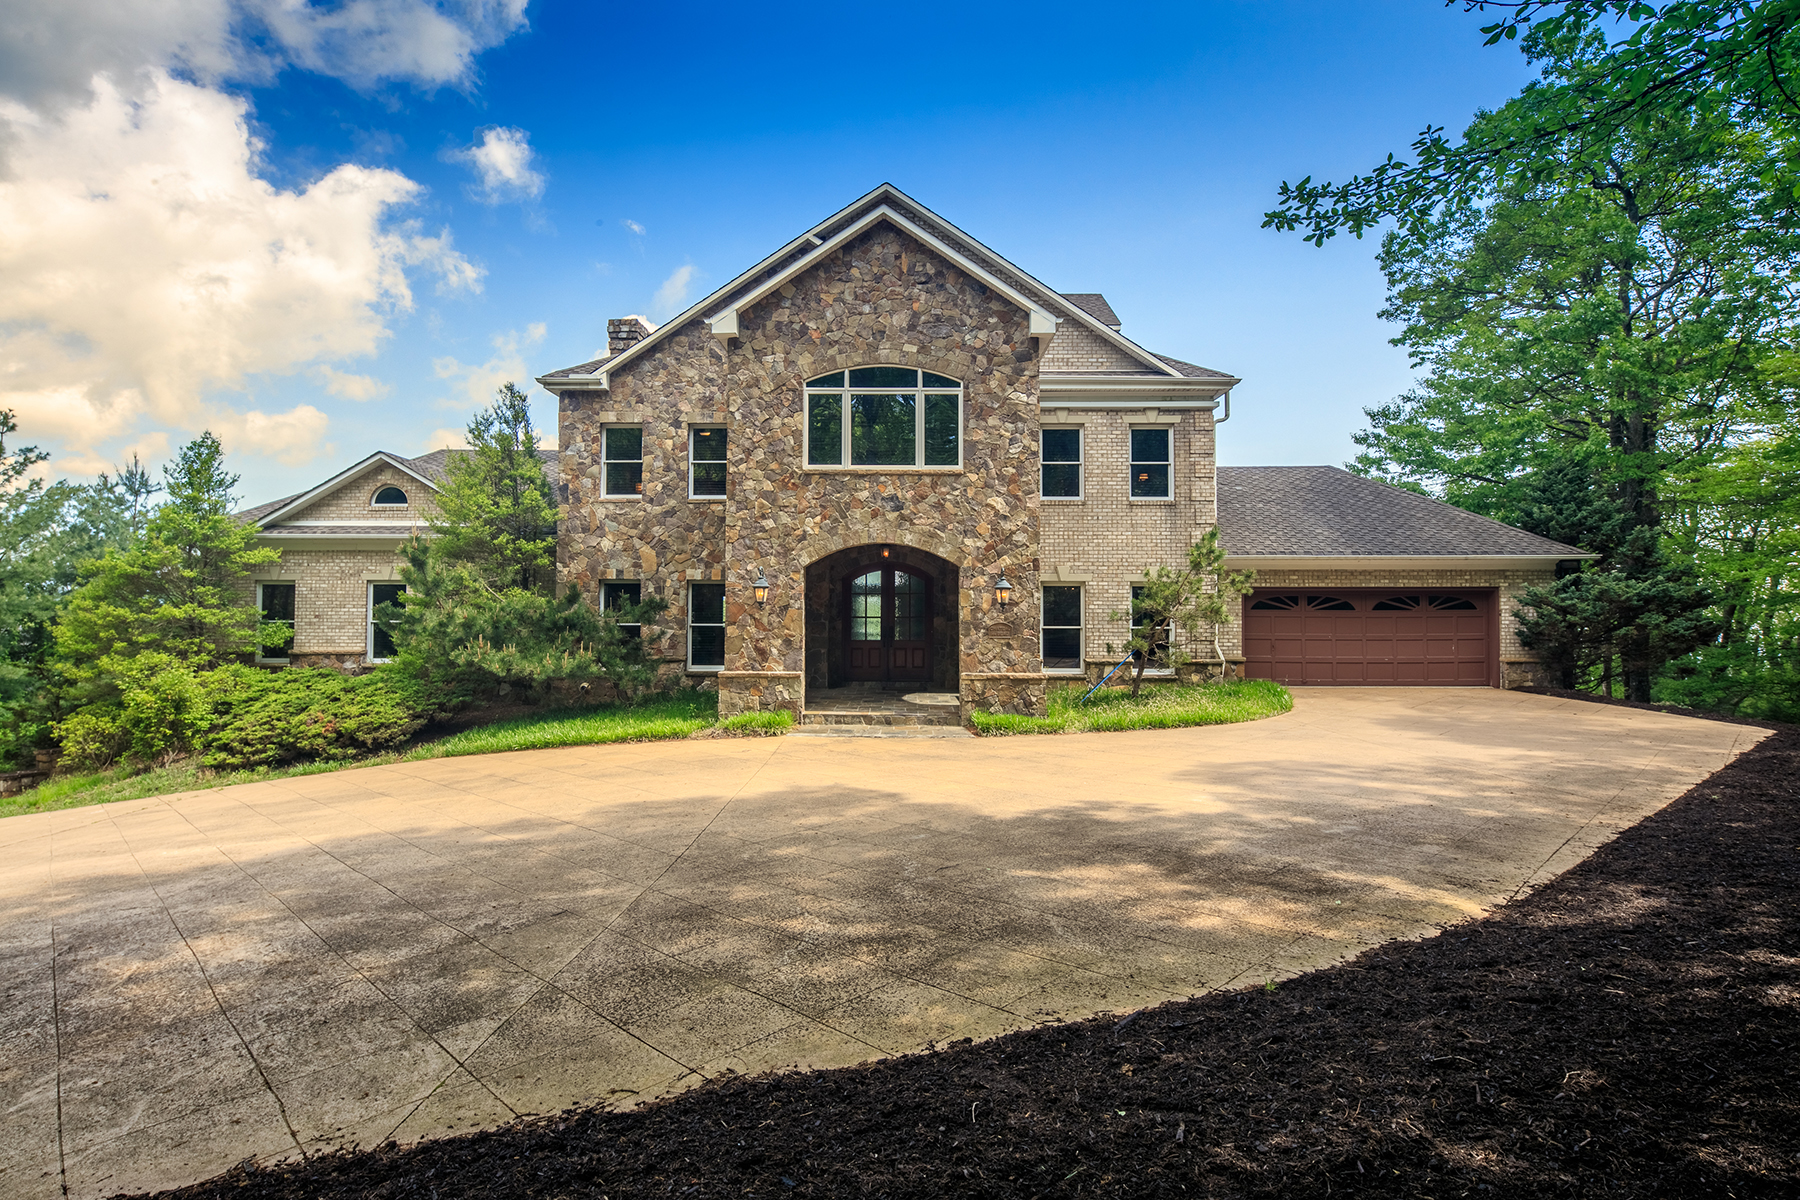 Single Family Homes for Active at OLDE BEAU - GLADE VALLEY 588 Troon Ave Glade Valley, North Carolina 28668 United States